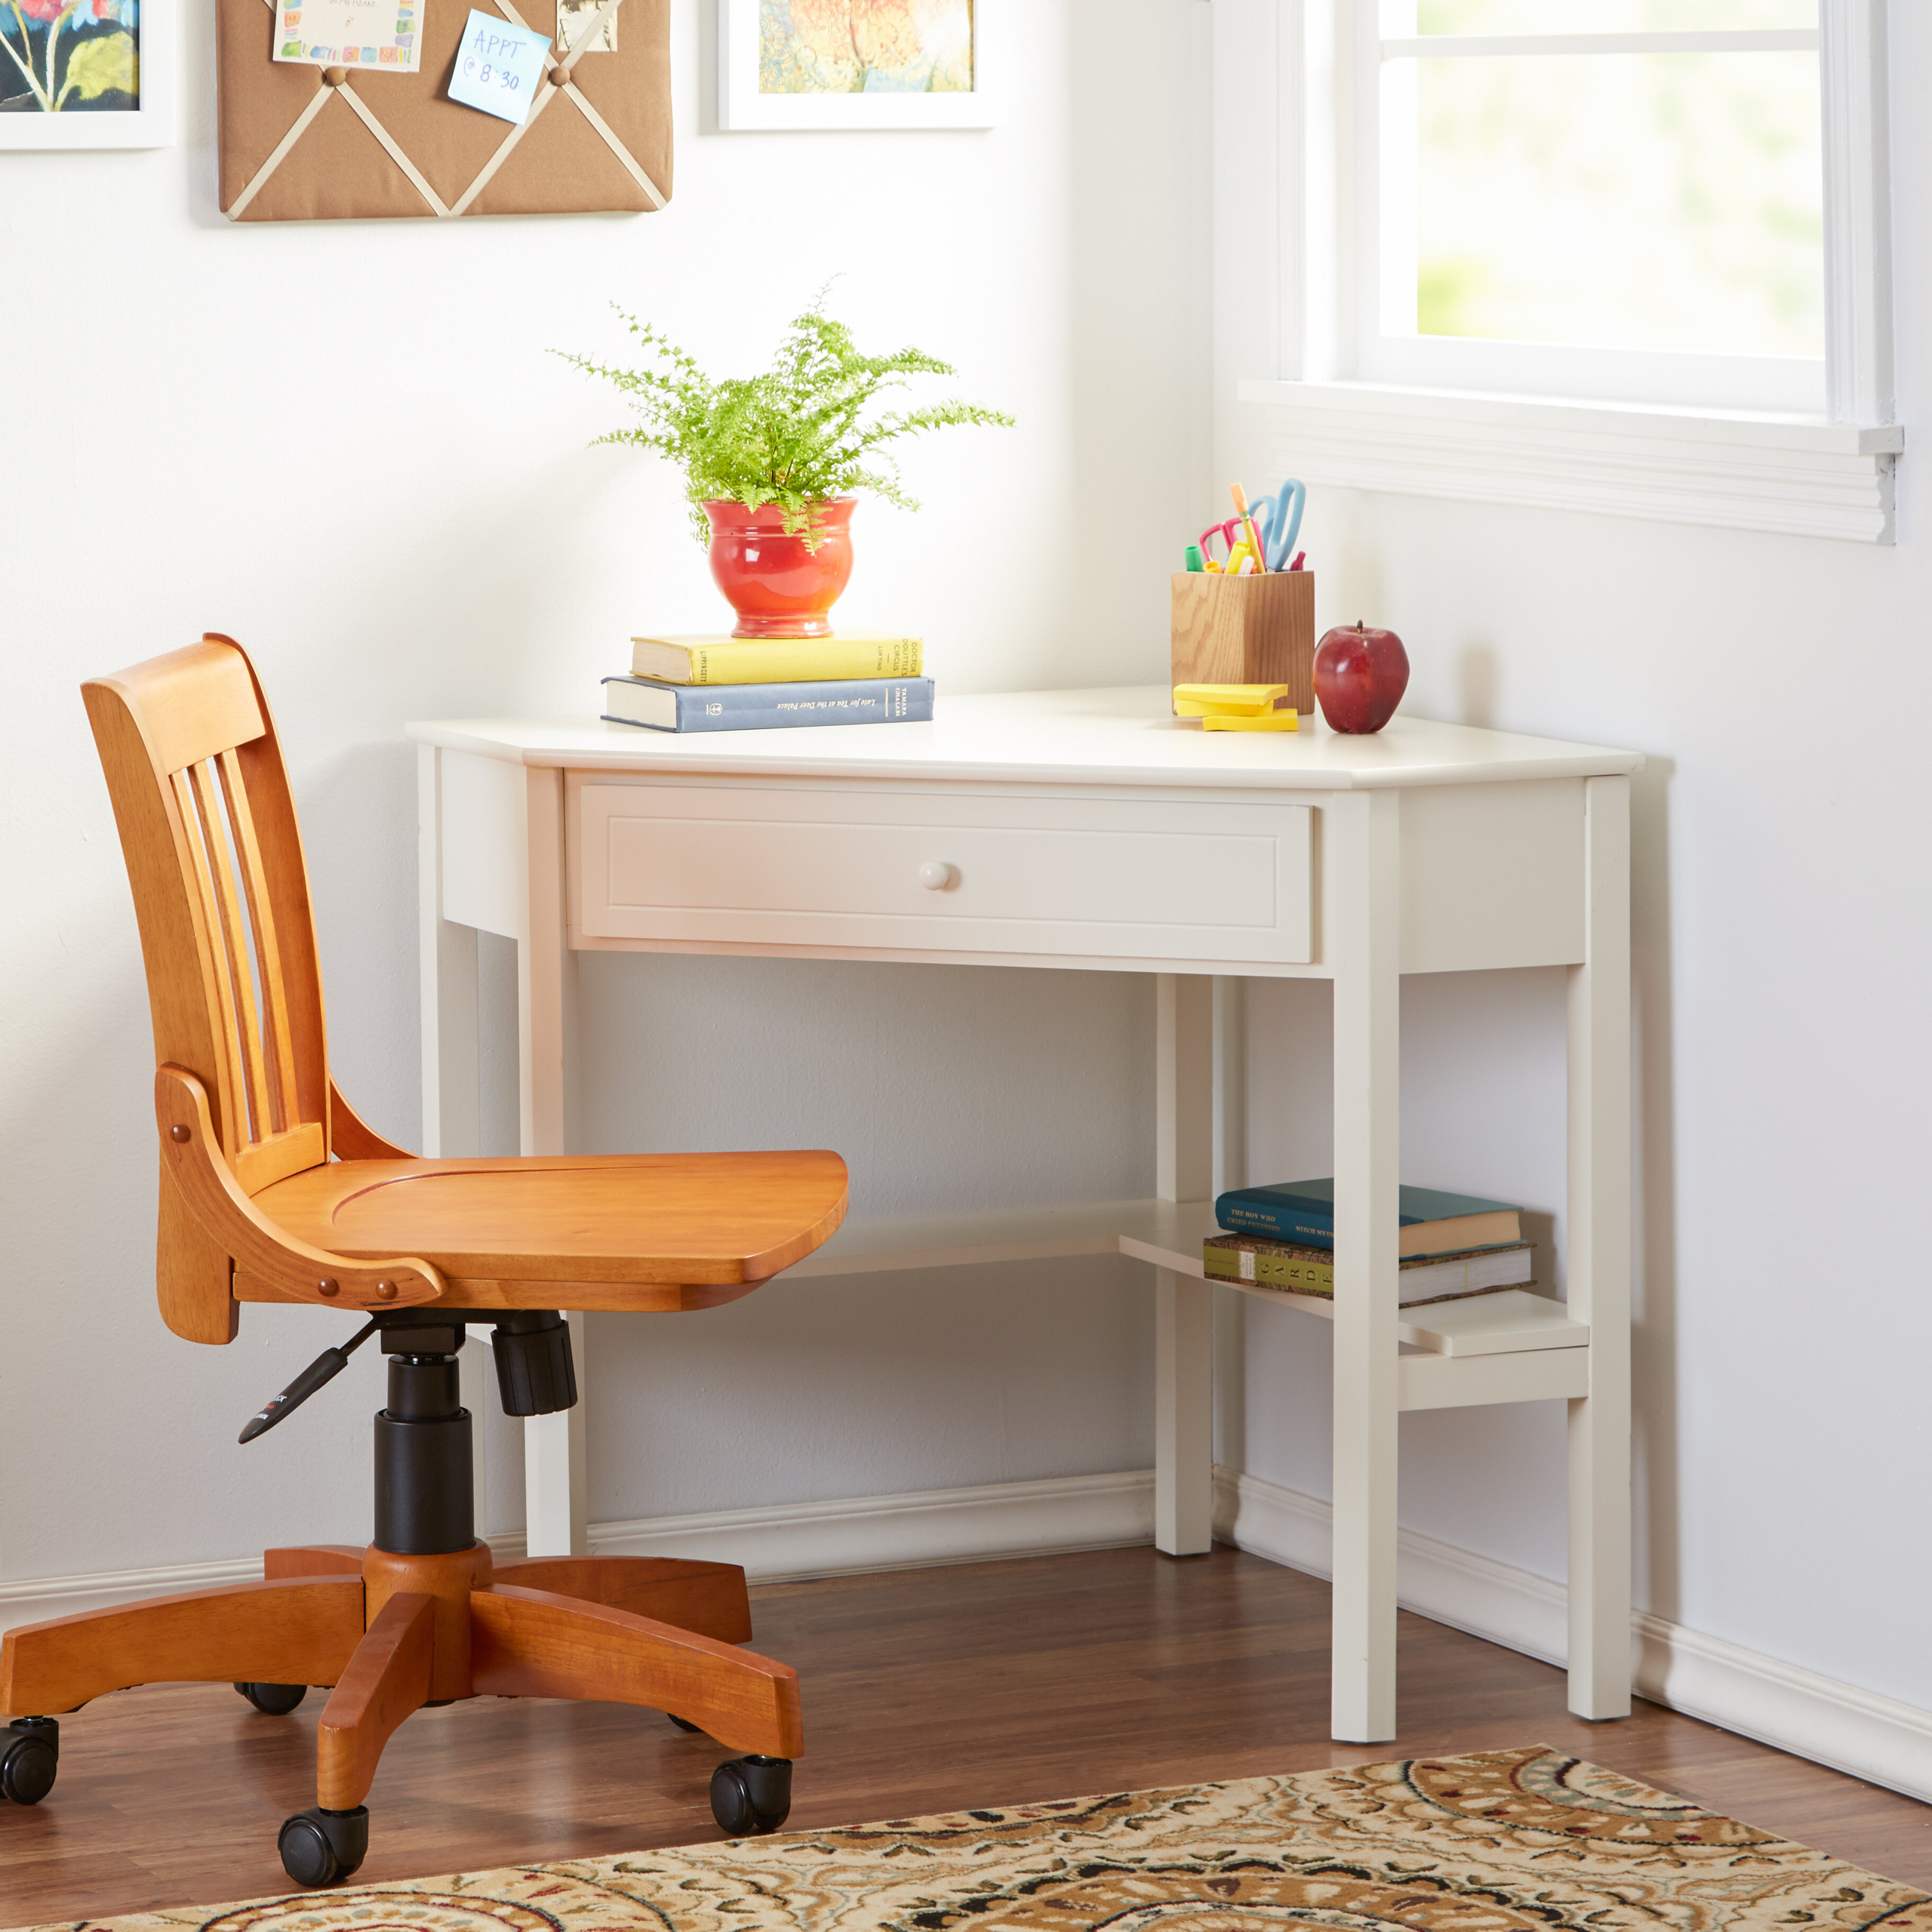 - 50+ Small Desks For Bedrooms You'll Love In 2020 - Visual Hunt